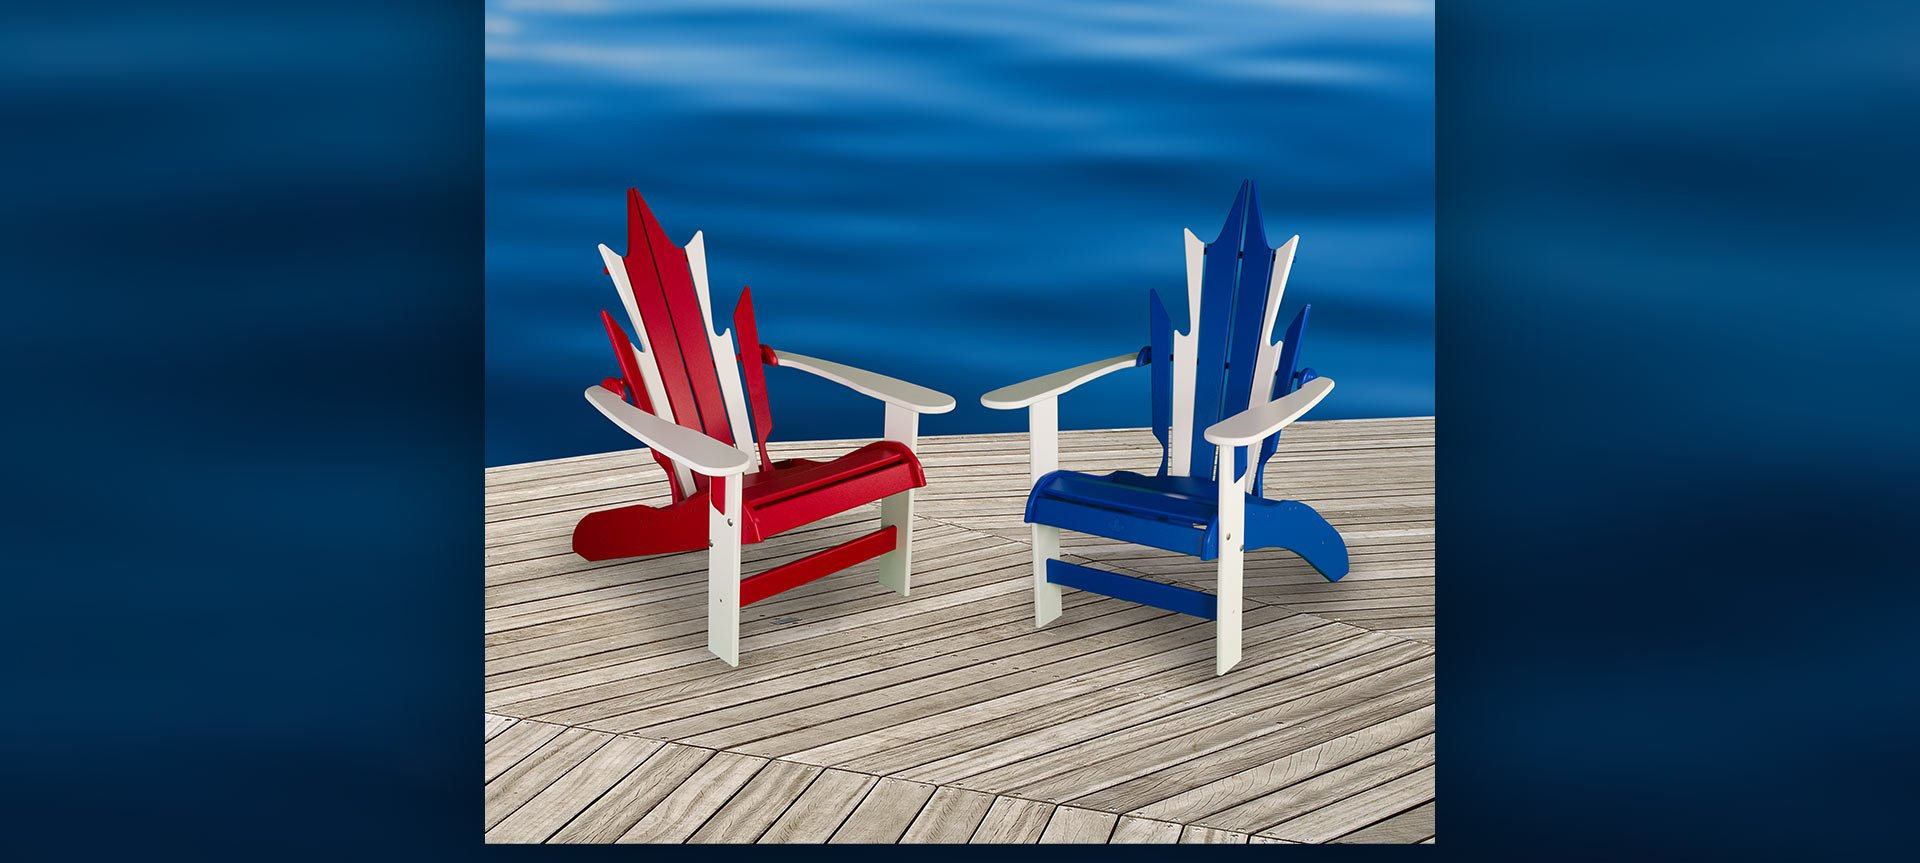 BeaverSprings Manufacturing - Maple Leaf Deck Chairs